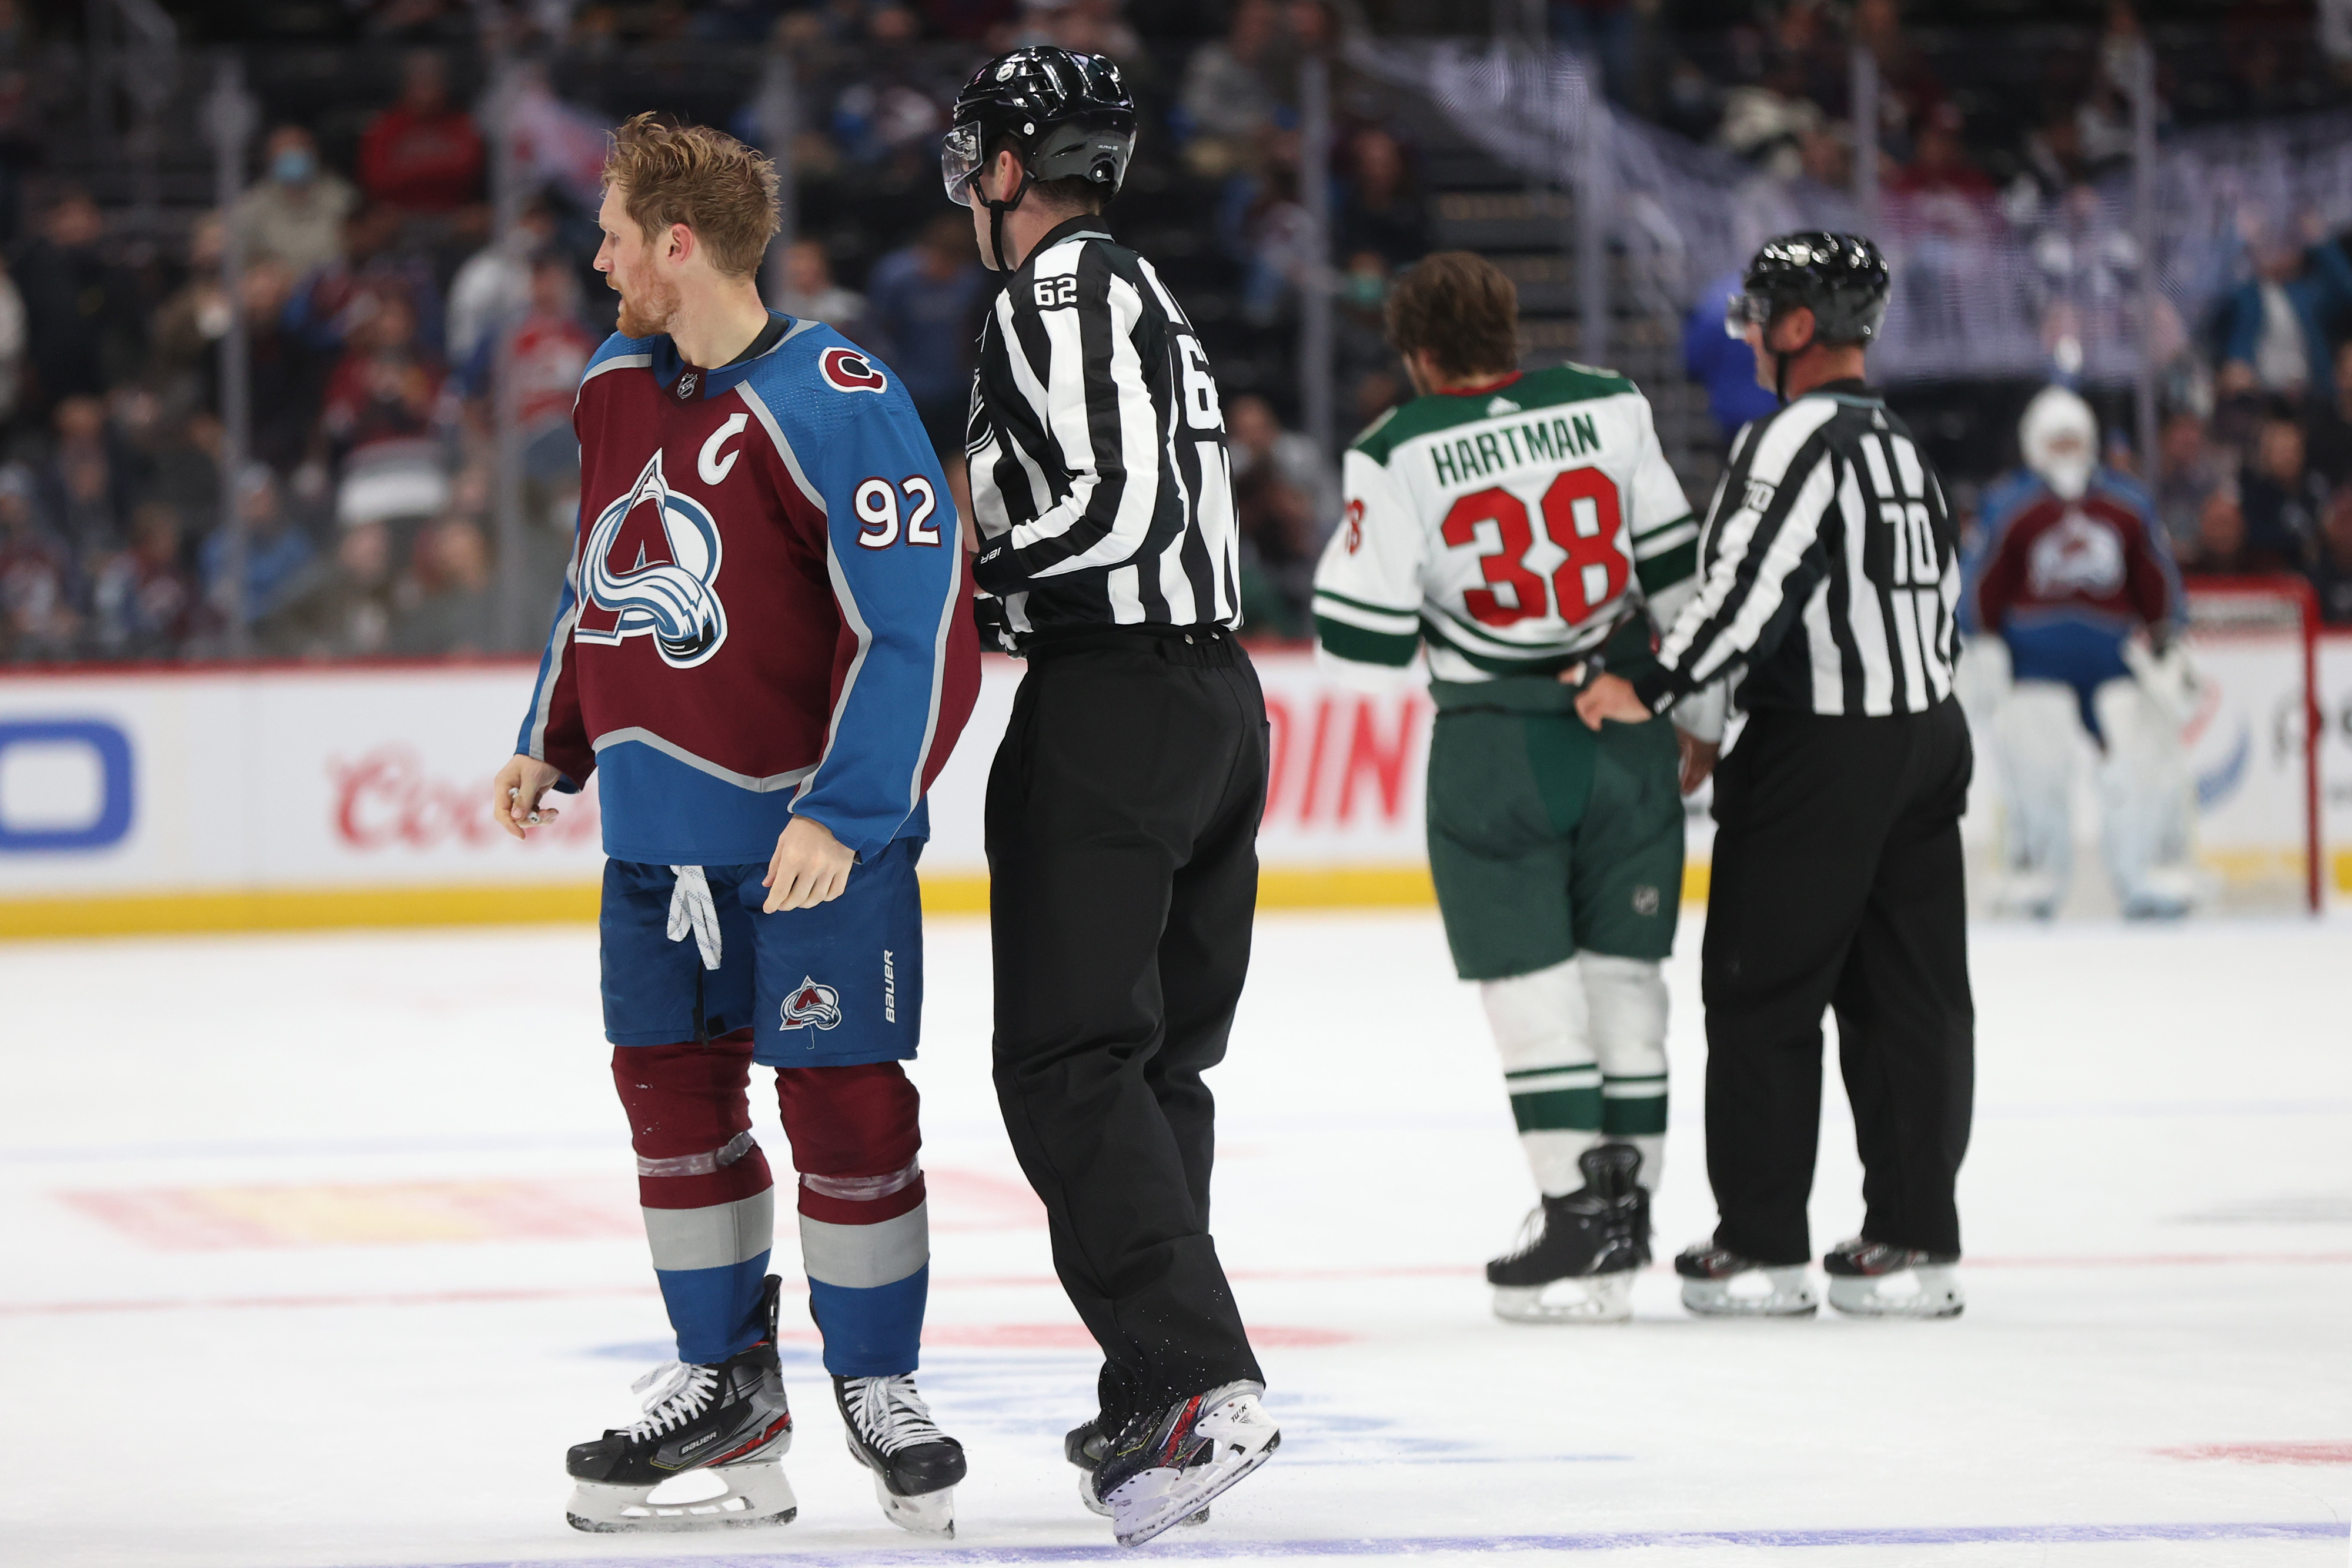 Gabriel Landeskog #92 of the Colorado Avalanche is separated from Ryan Hartman #38 of the Minnesota Wild after fighting in the second period at Ball Arena on September 30, 2021 in Denver, Colorado.